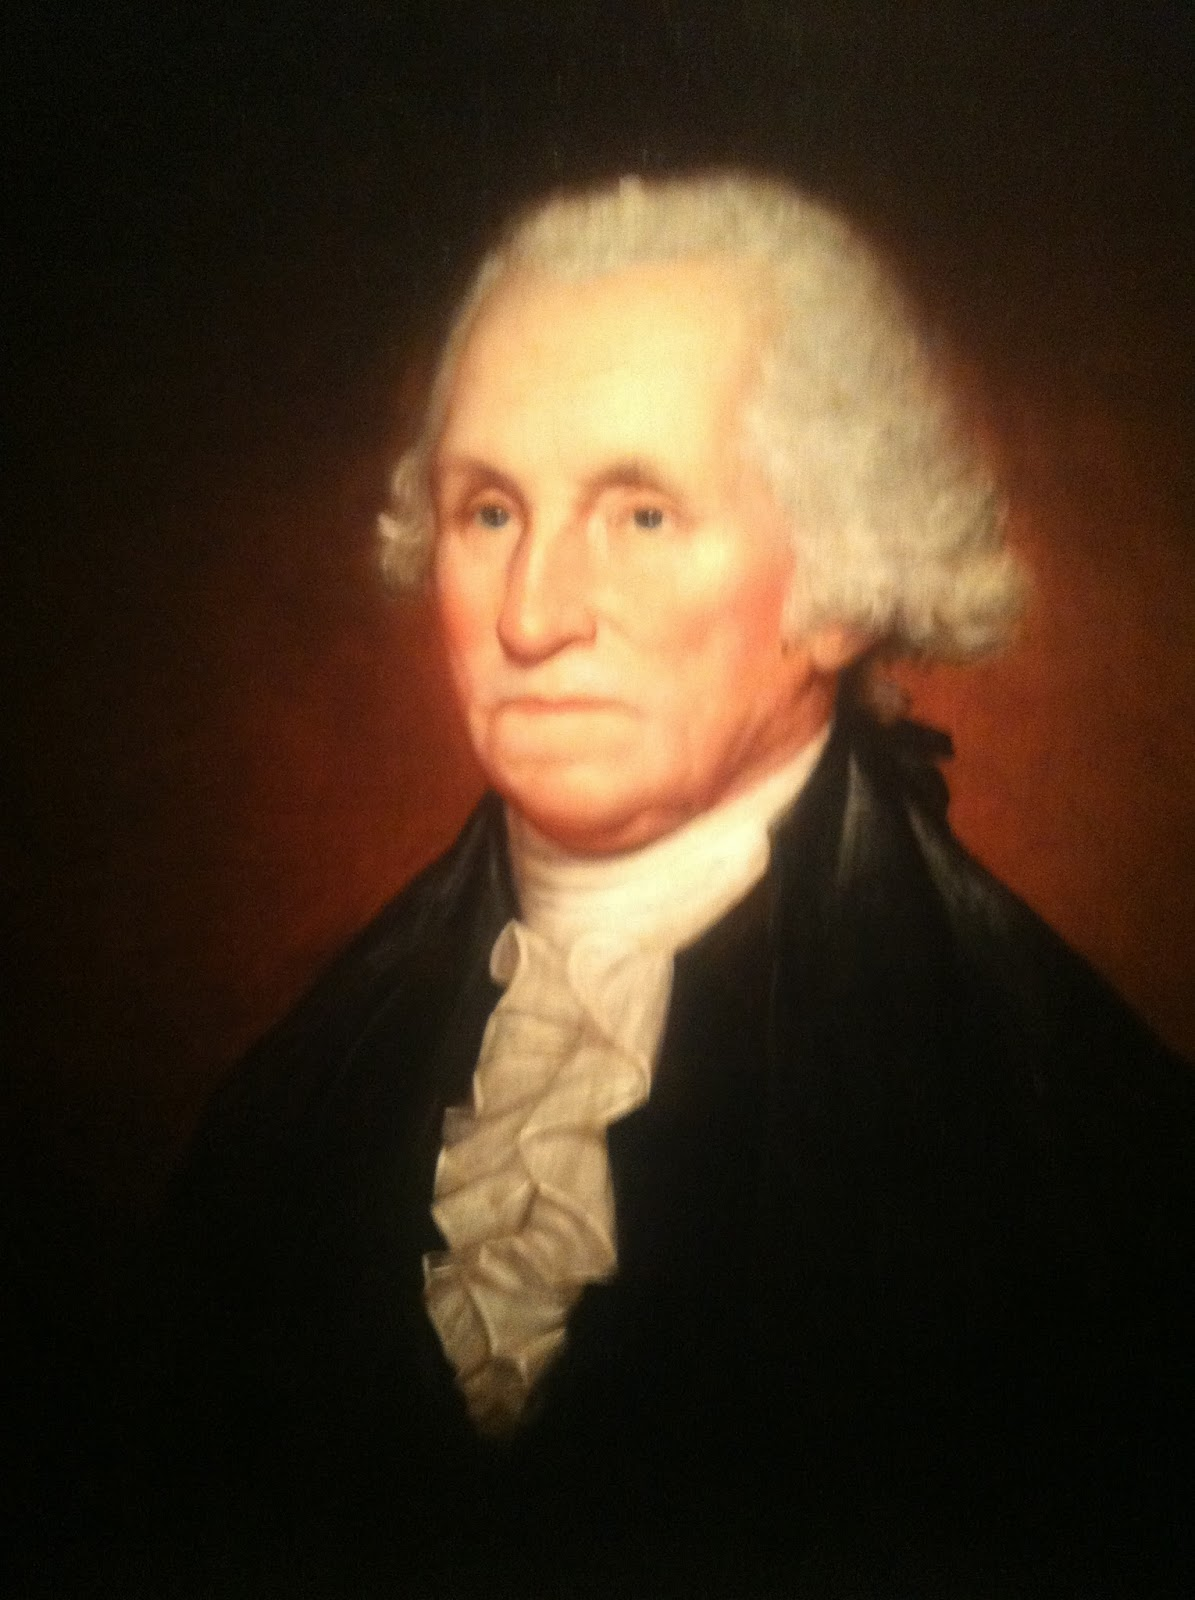 Data Driven Viewpoints Here Is Why George Washington Is